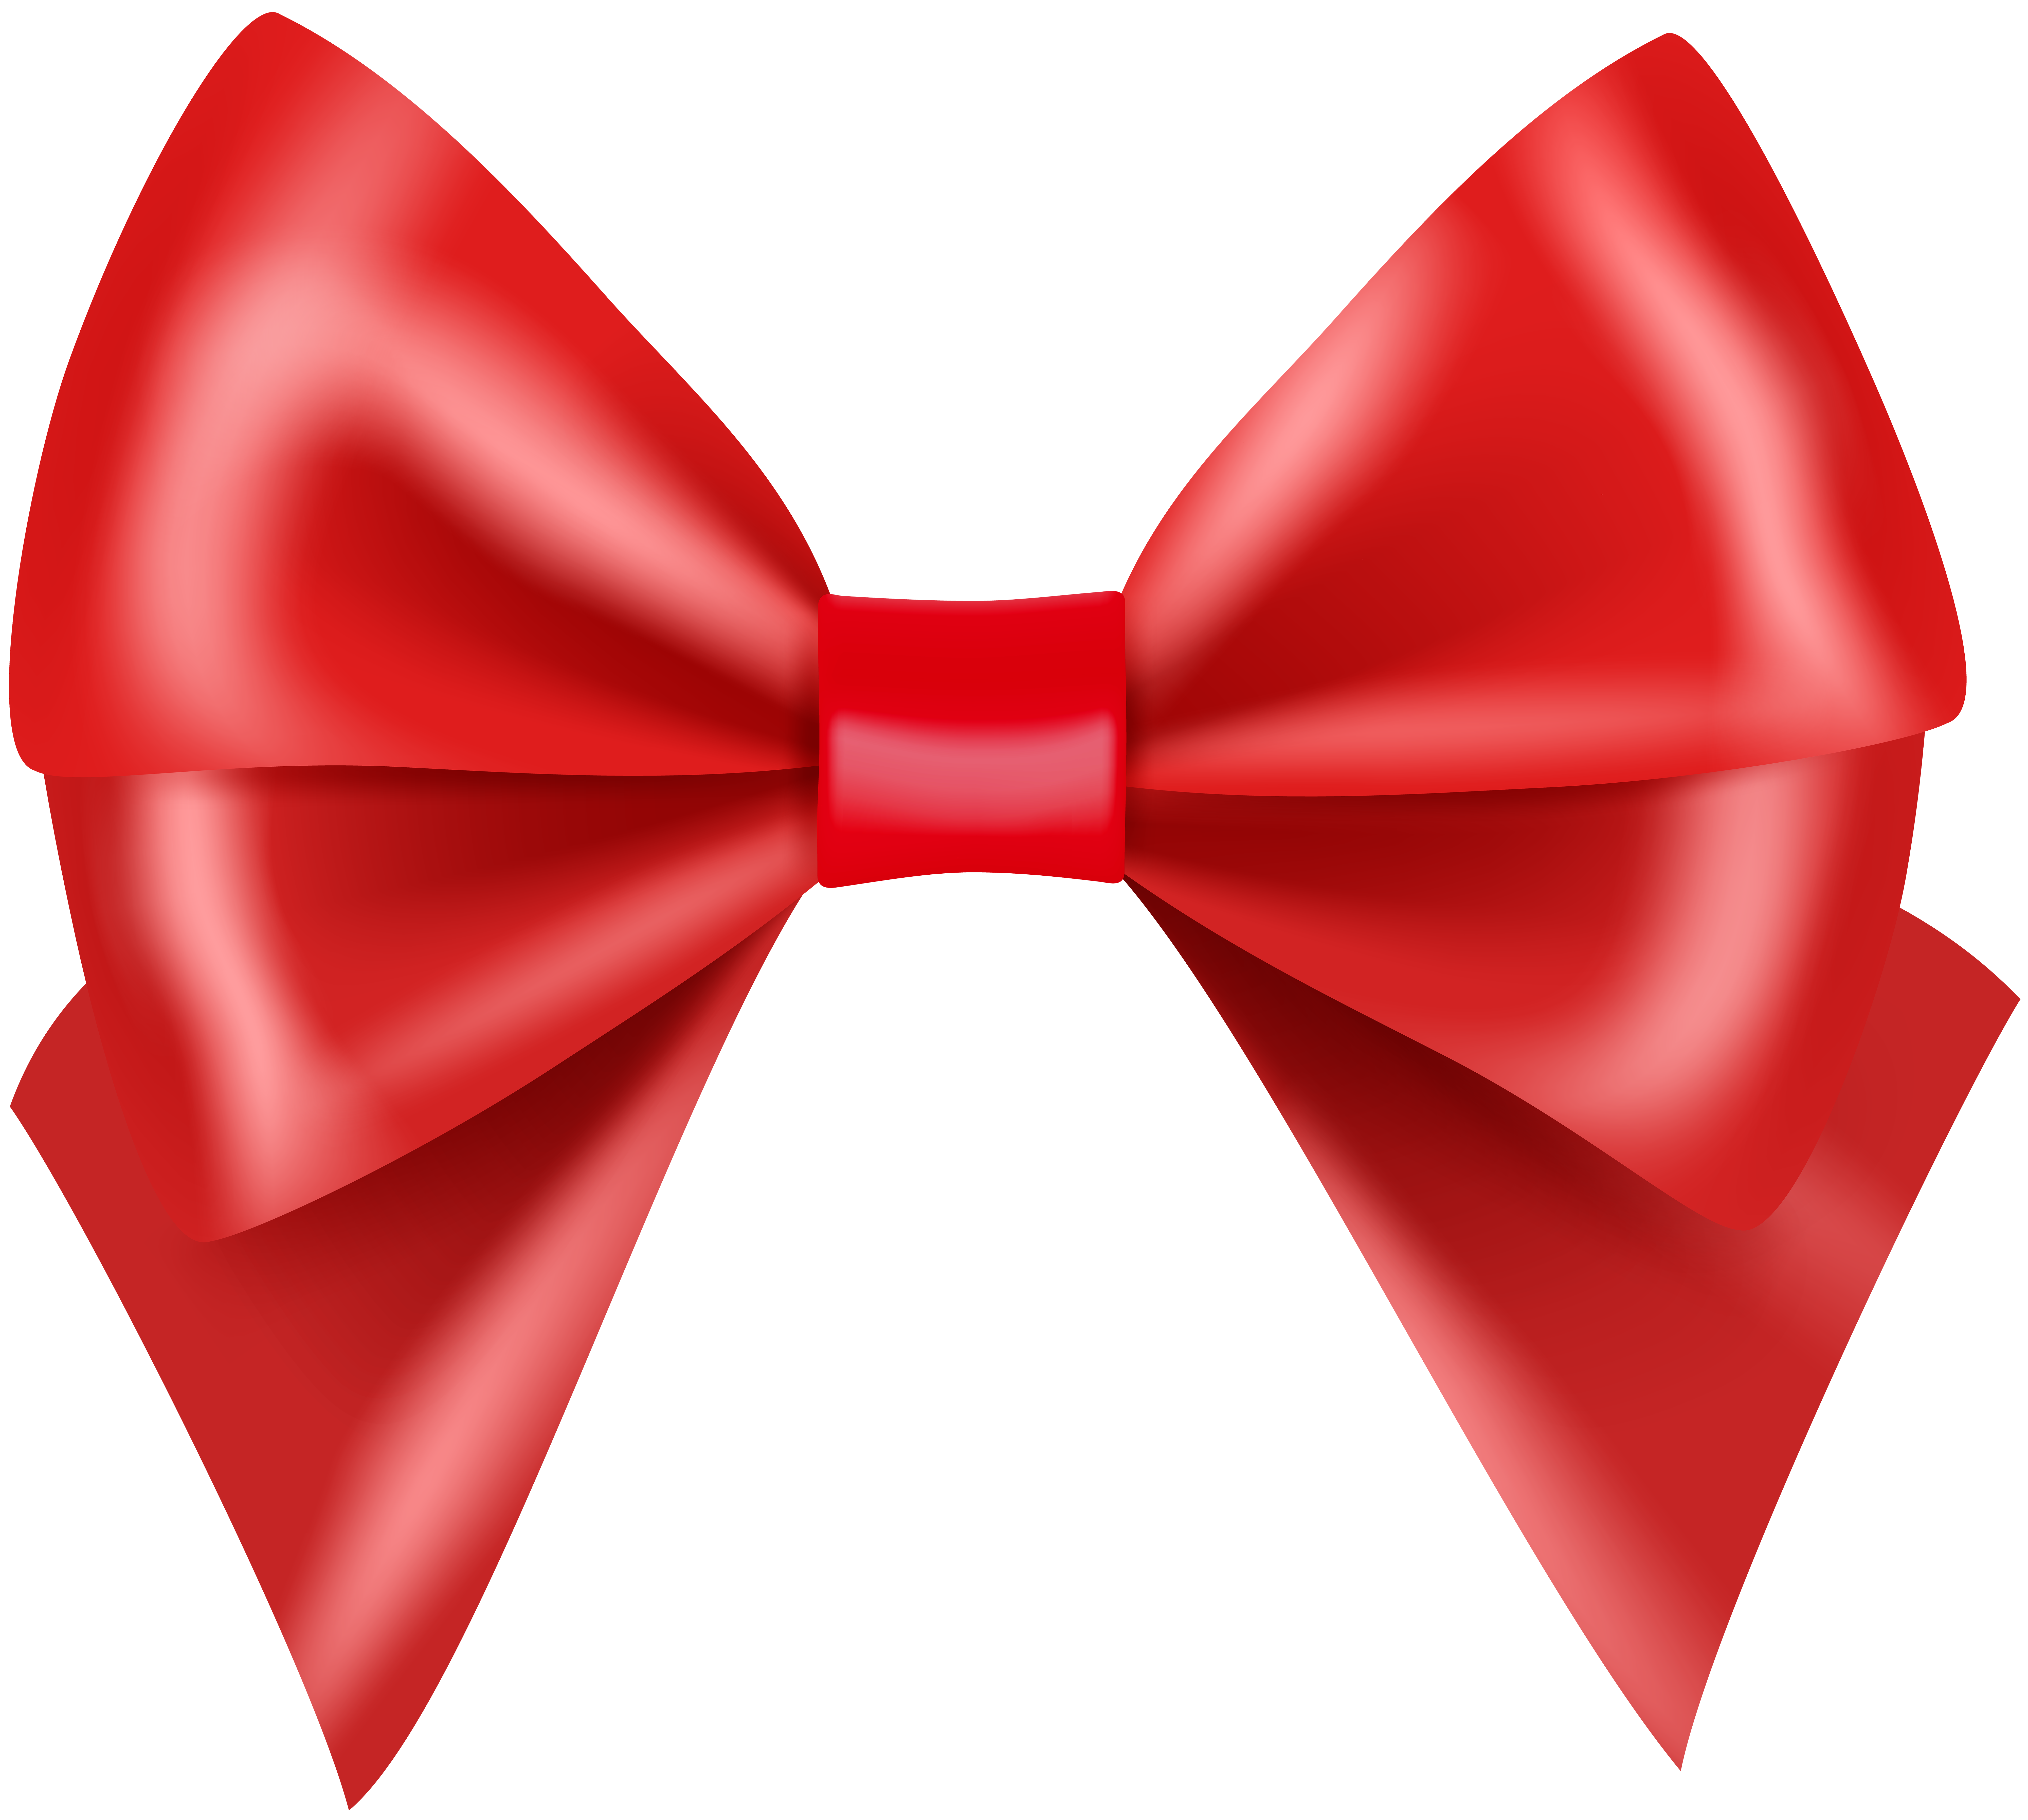 Red transparent image gallery. Clipart bow large